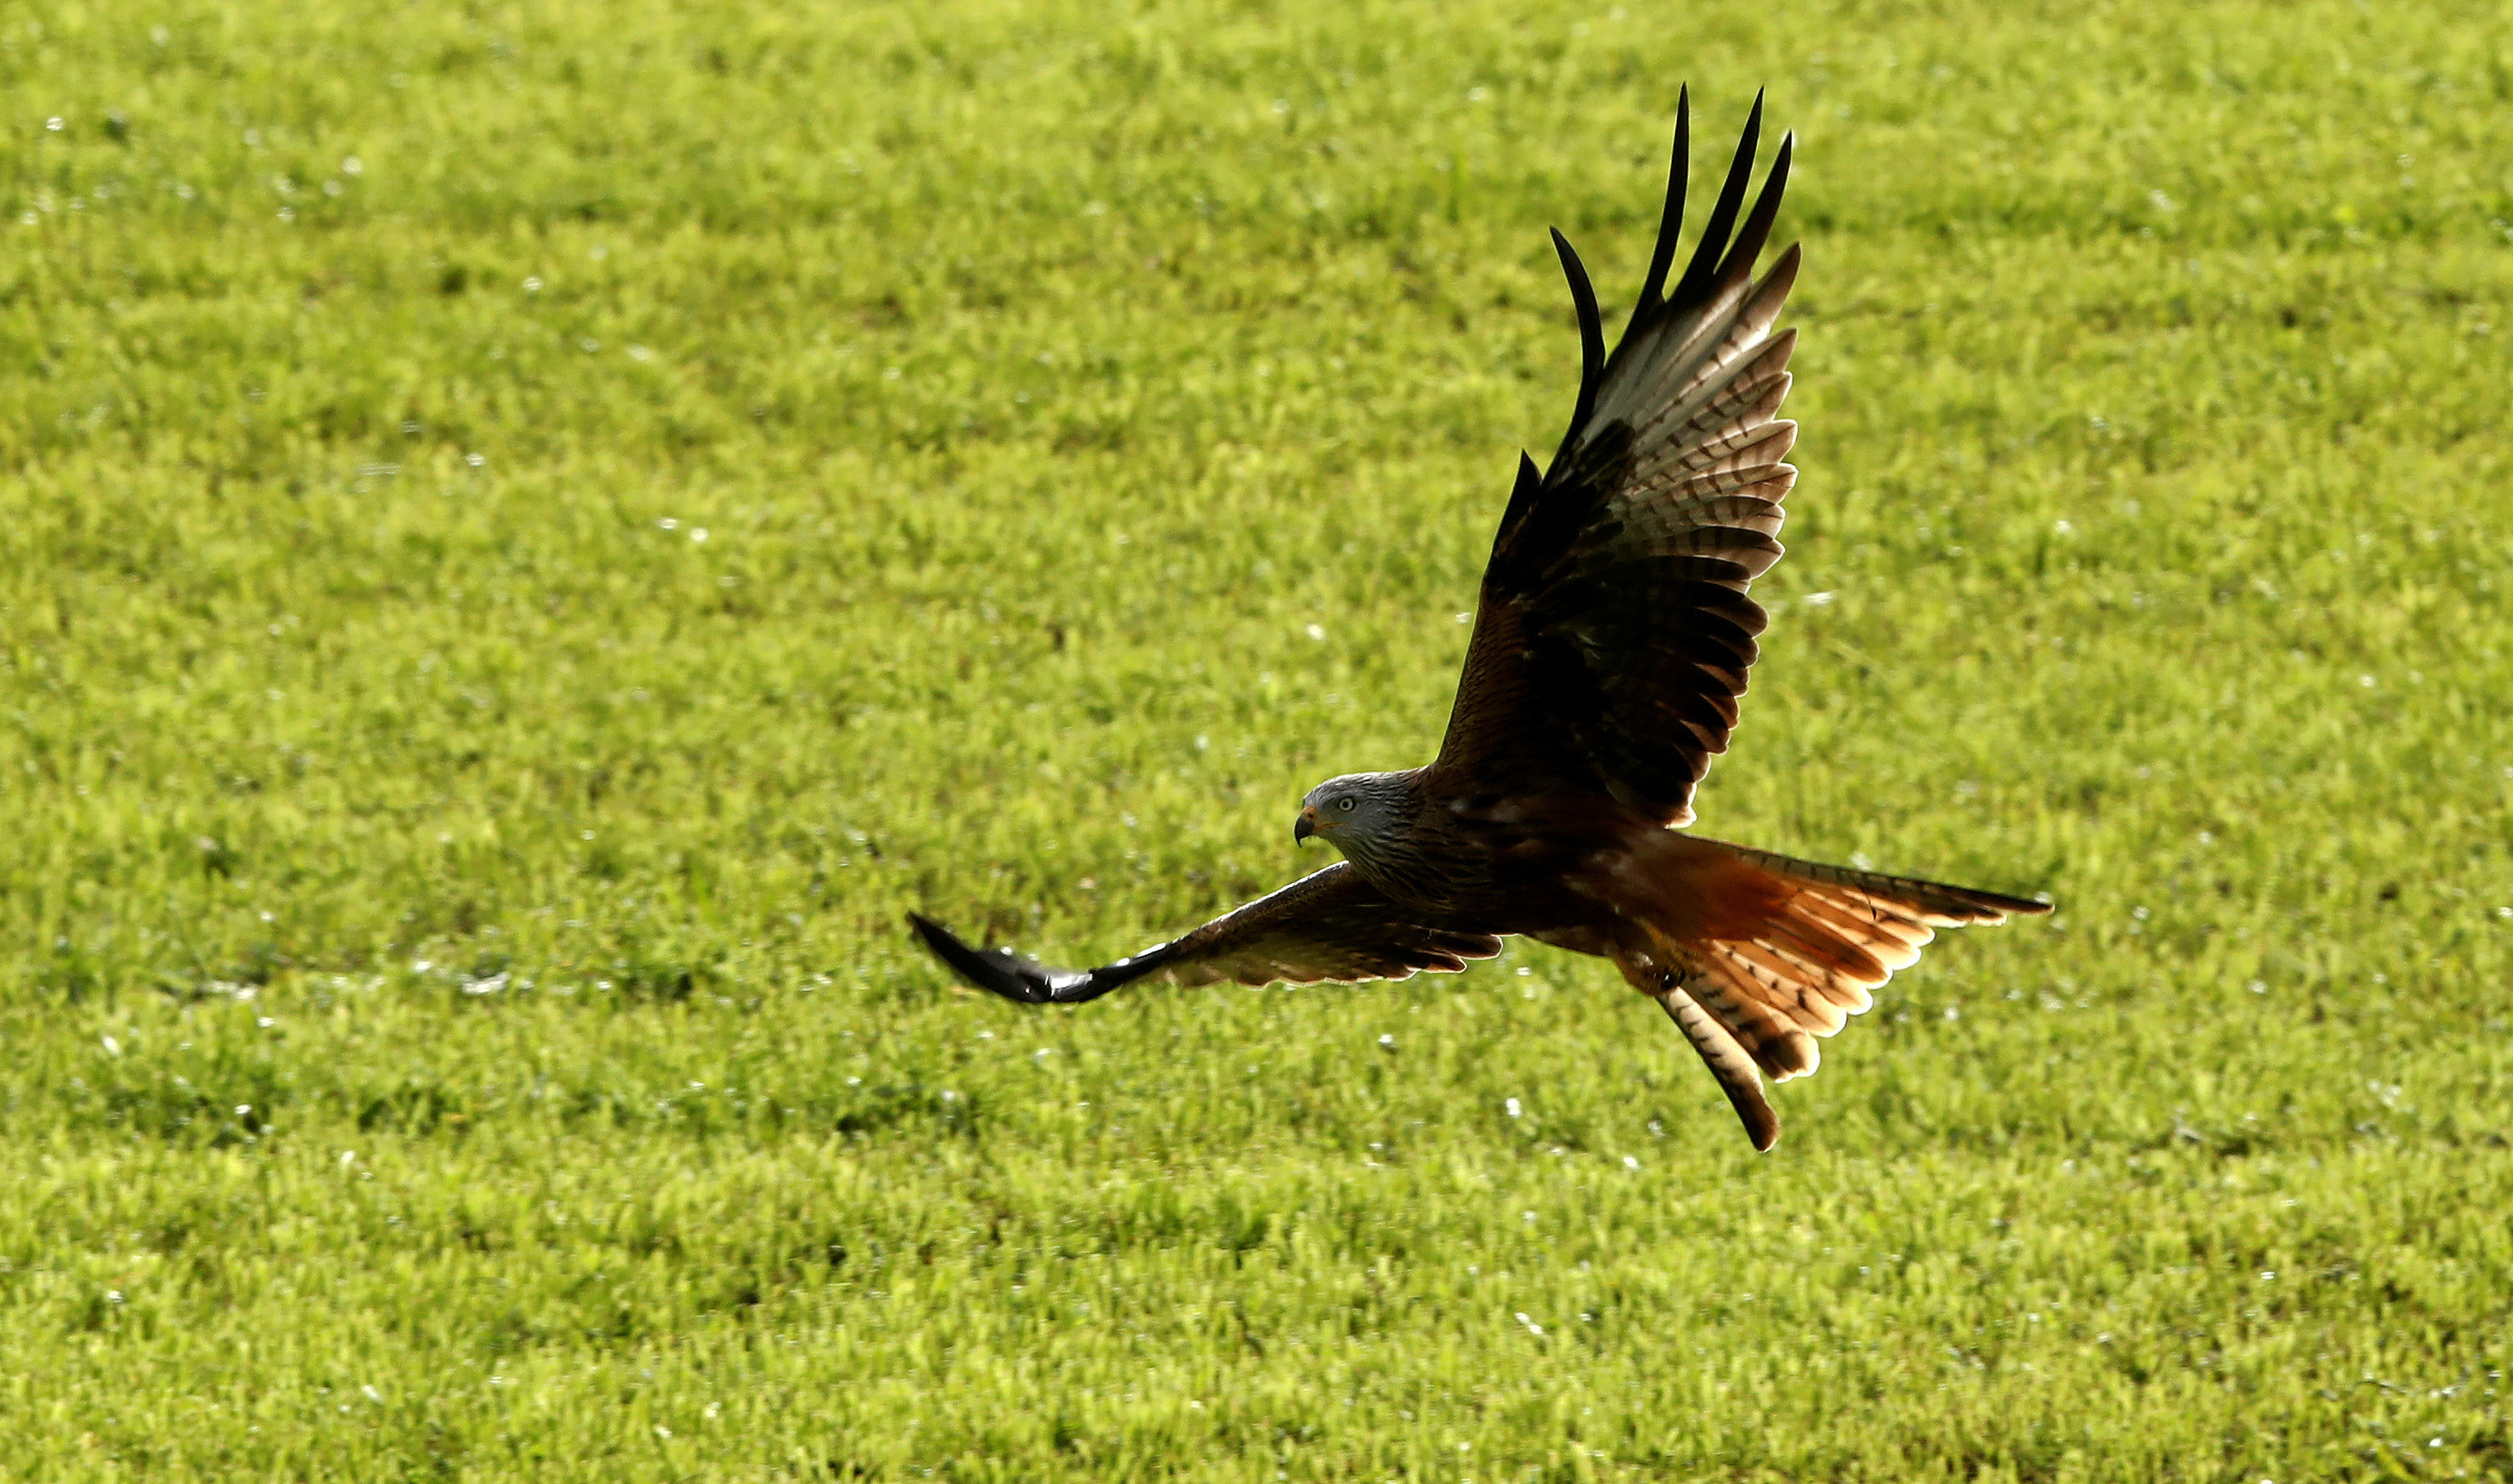 A red kite flies over a field during sunny autumn weather near Huettwilen, Switzerland October 30, 2017.  REUTERS/Arnd Wiegmann - RC16EF411AE0